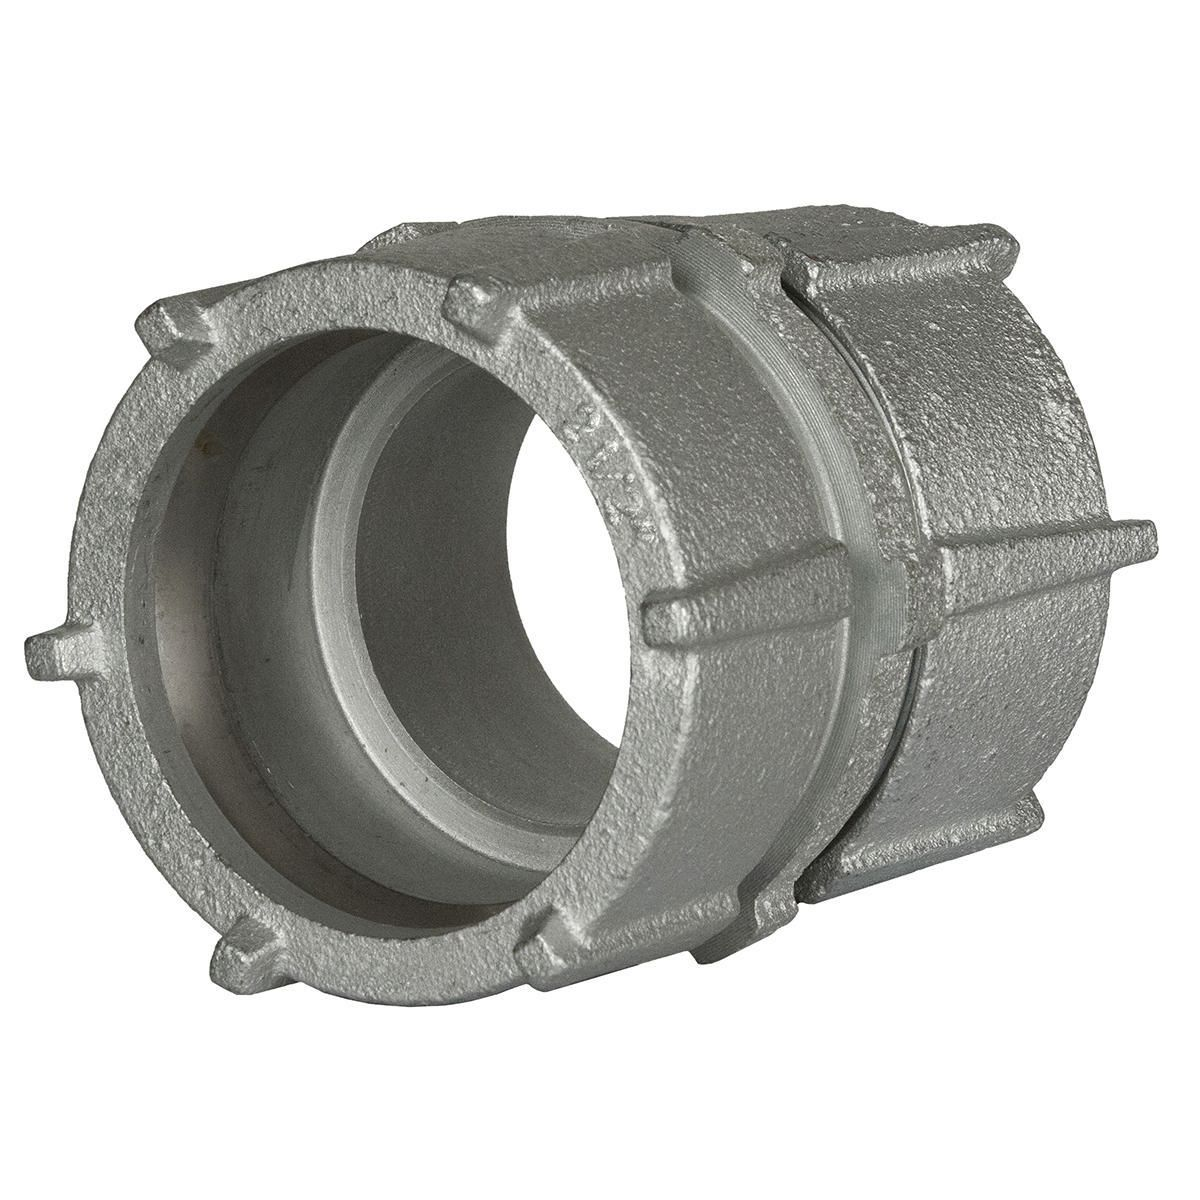 RGD/IMC COMPR COUPLING 3 IN MALL IRON